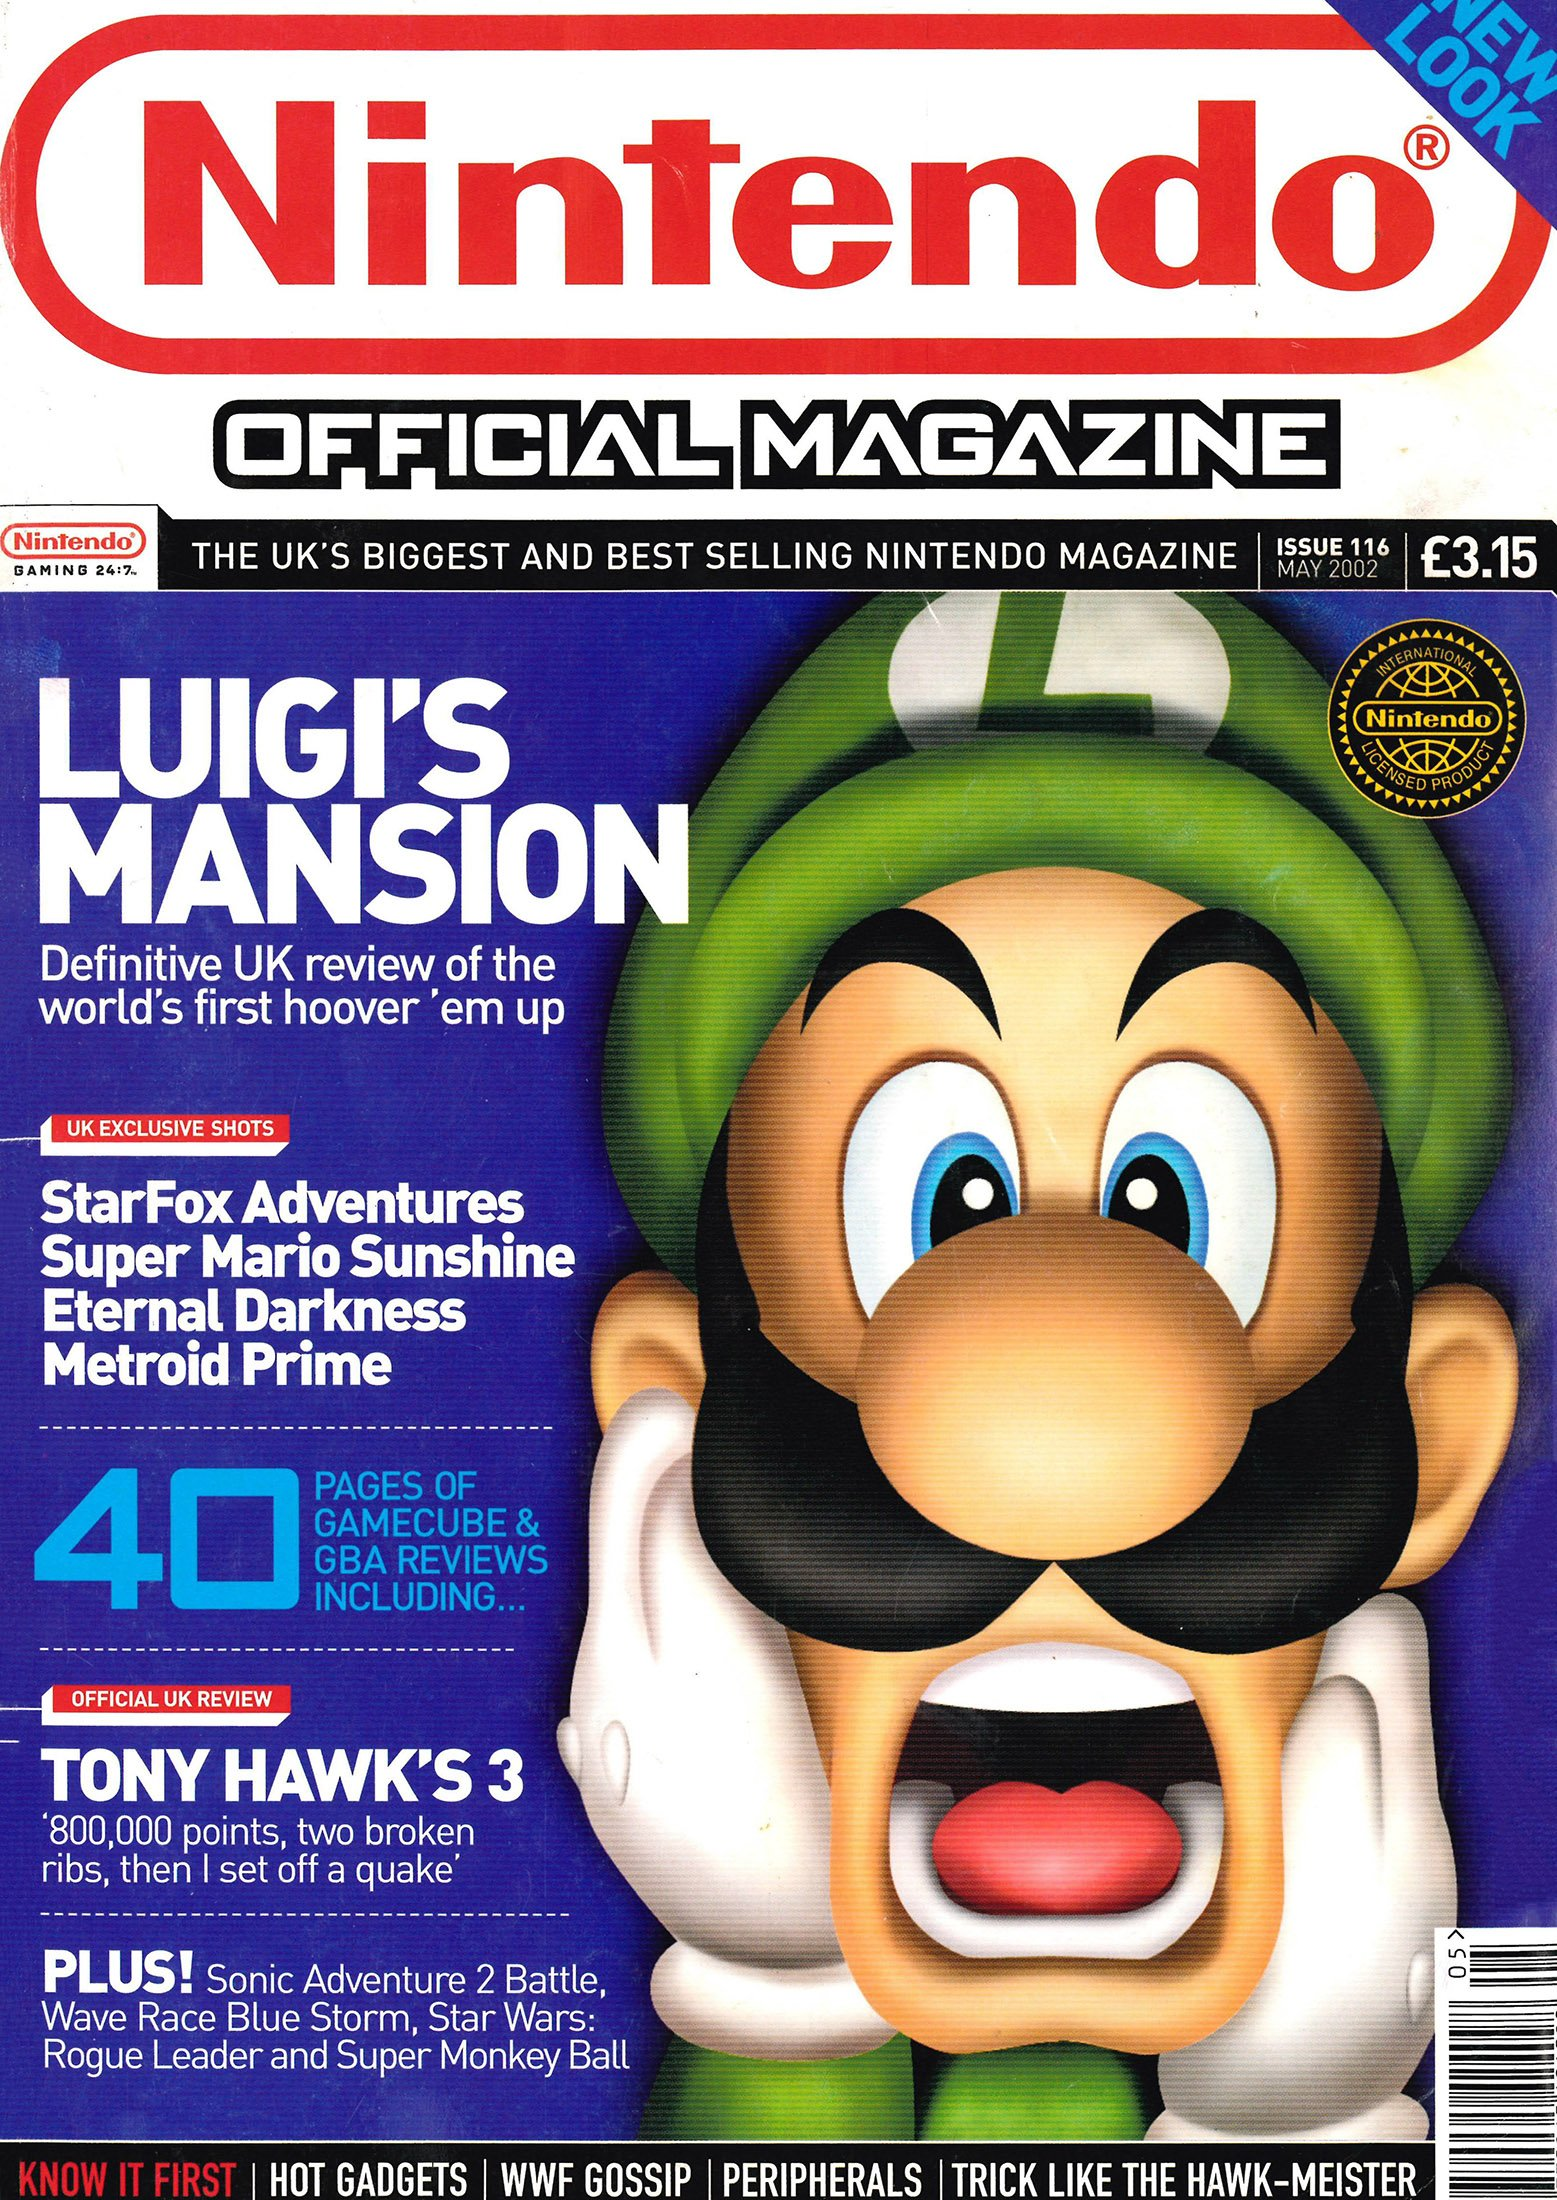 Nintendo Official Magazine 116 (May 2002)